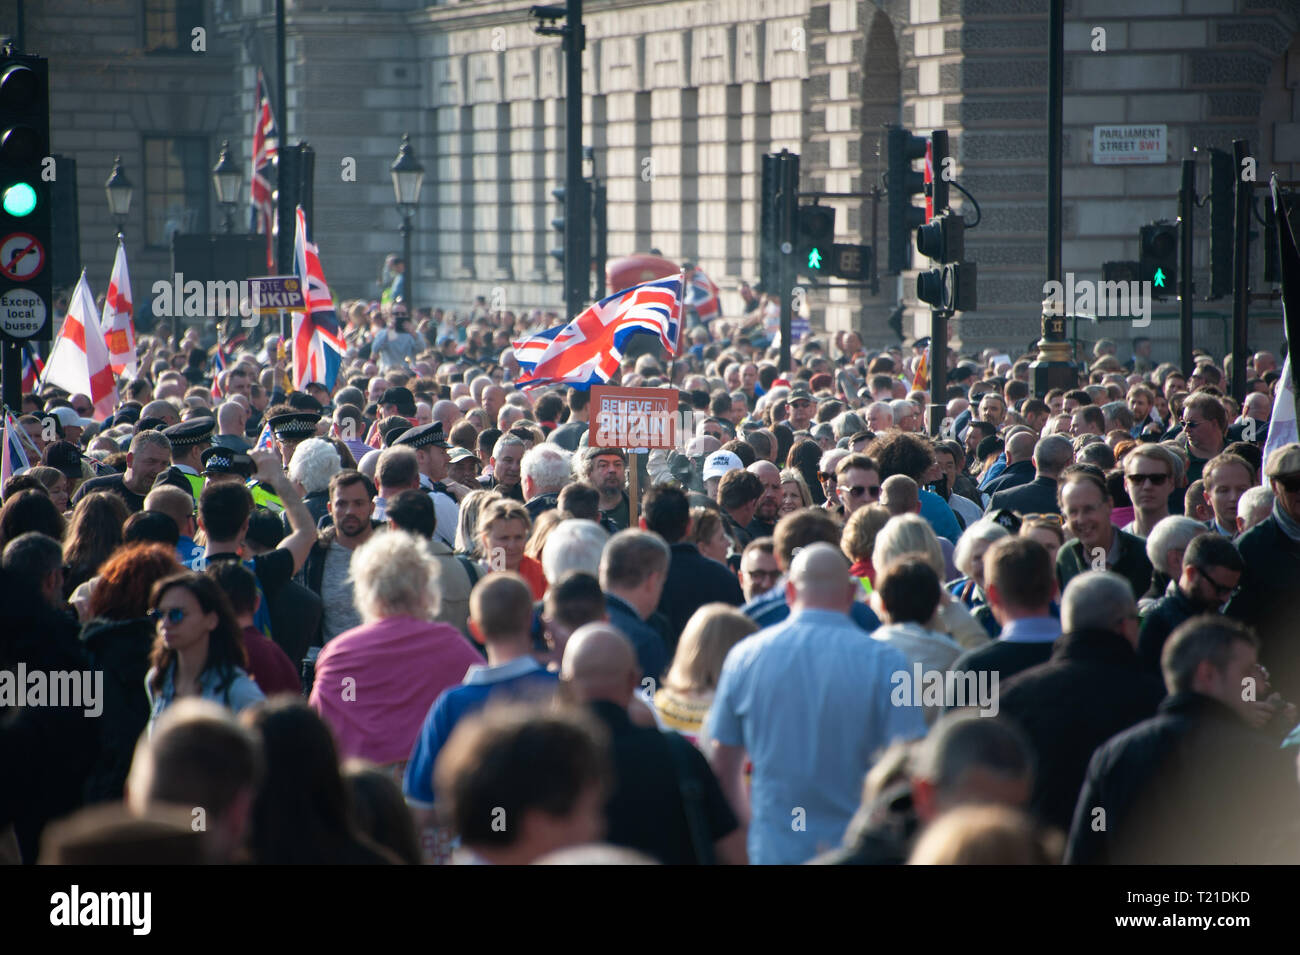 London, United Kingdom. 29th Mar, 2019. A Pro Leave protestor holding a Believe In Britain sign during a rally near Parliament Square. Credit: Sandip Savasadia/Alamy Live News - Stock Image